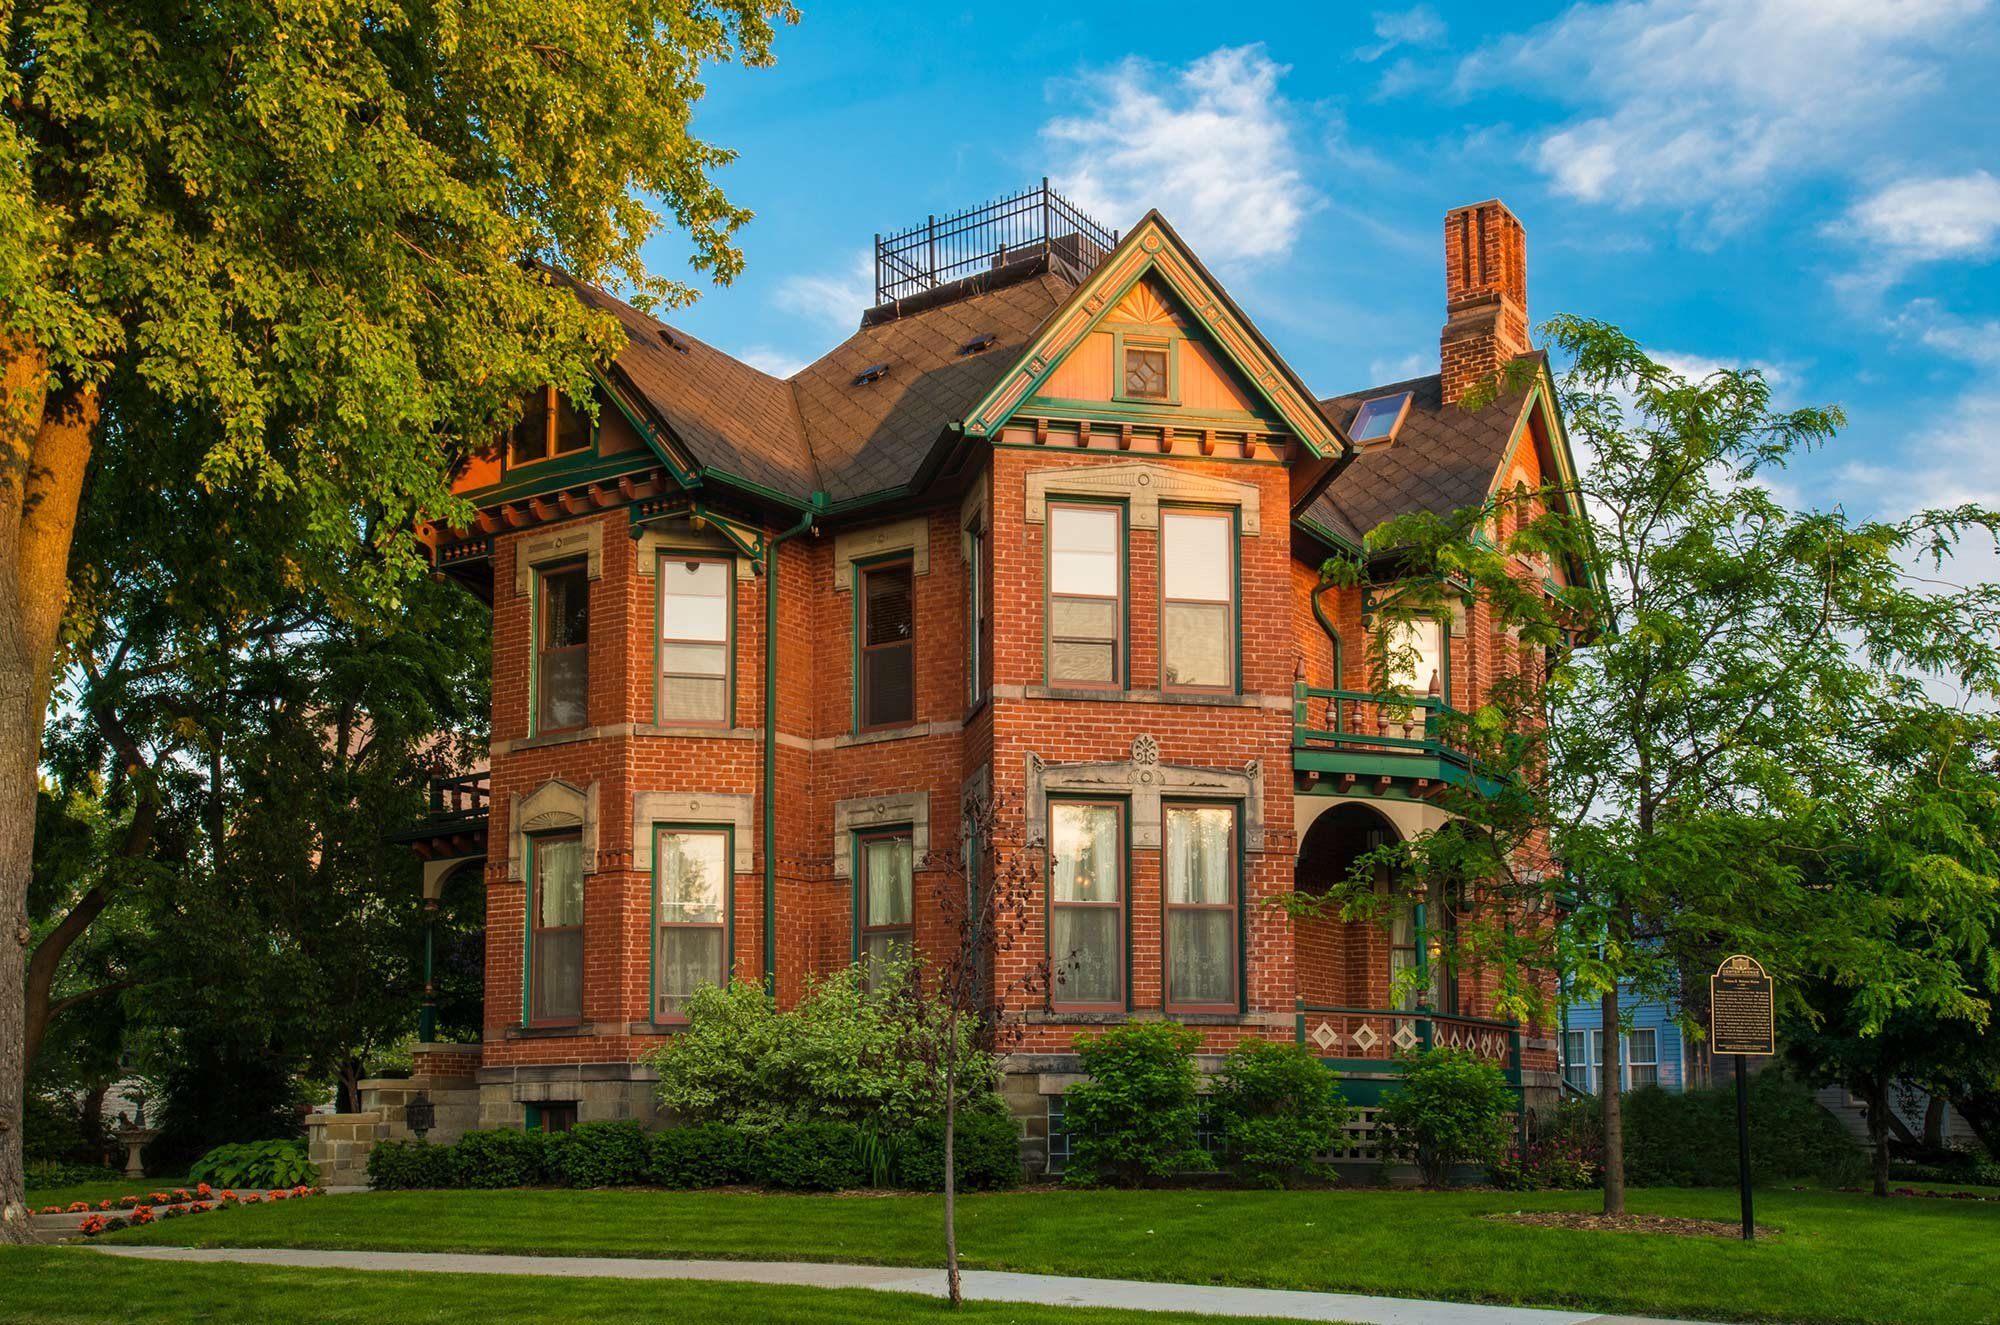 Historical Webster House, Bed and Breakfast, Romantic